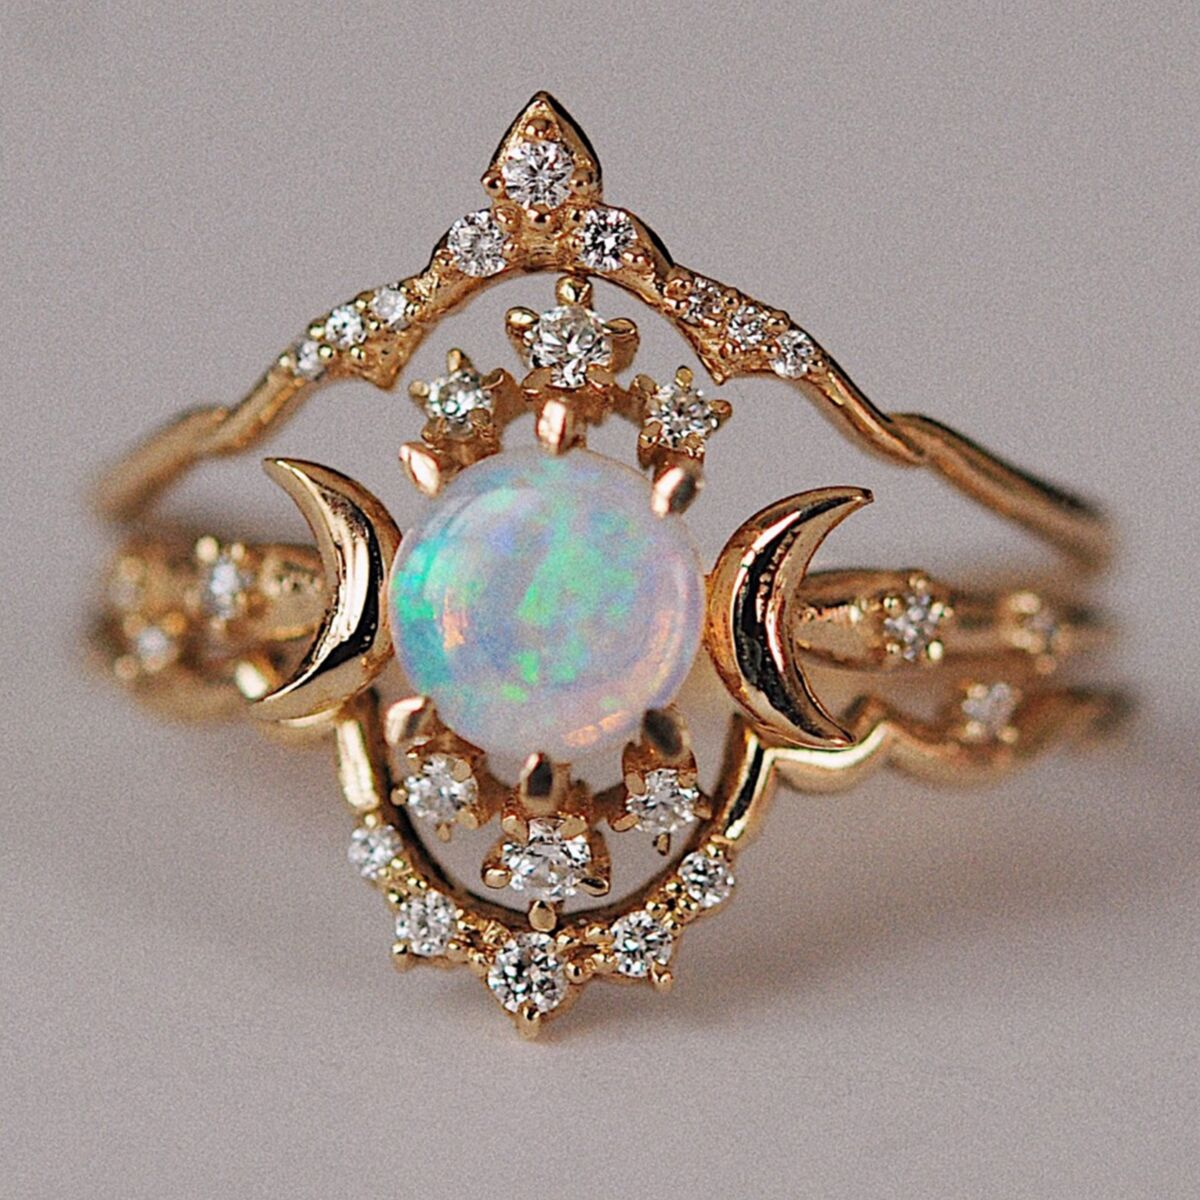 Altair Ring image